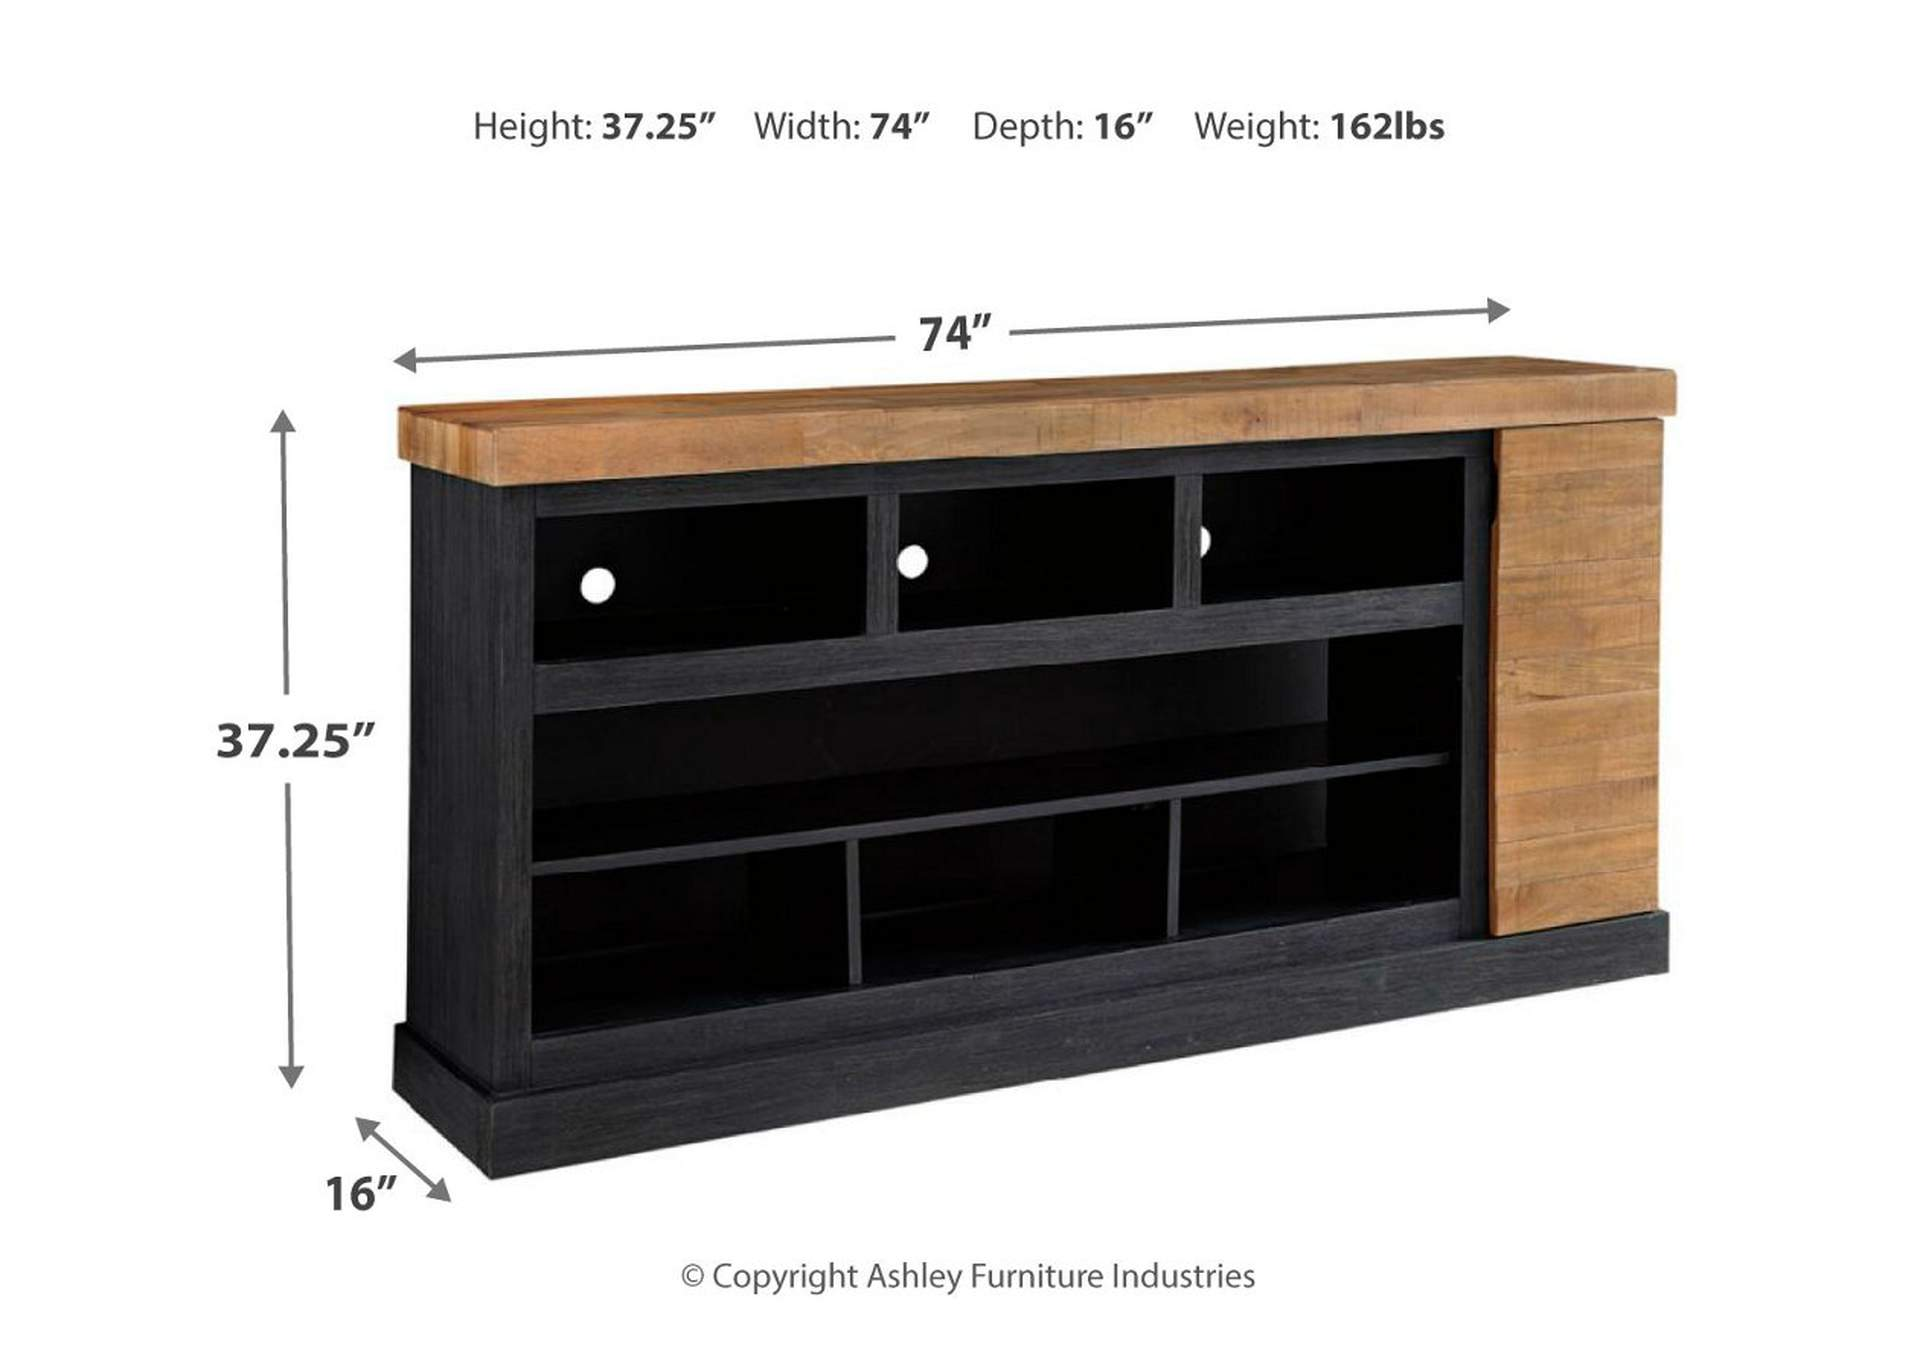 Tonnari Two Tone XL TV Stand w/Fireplace Option,Signature Design By Ashley